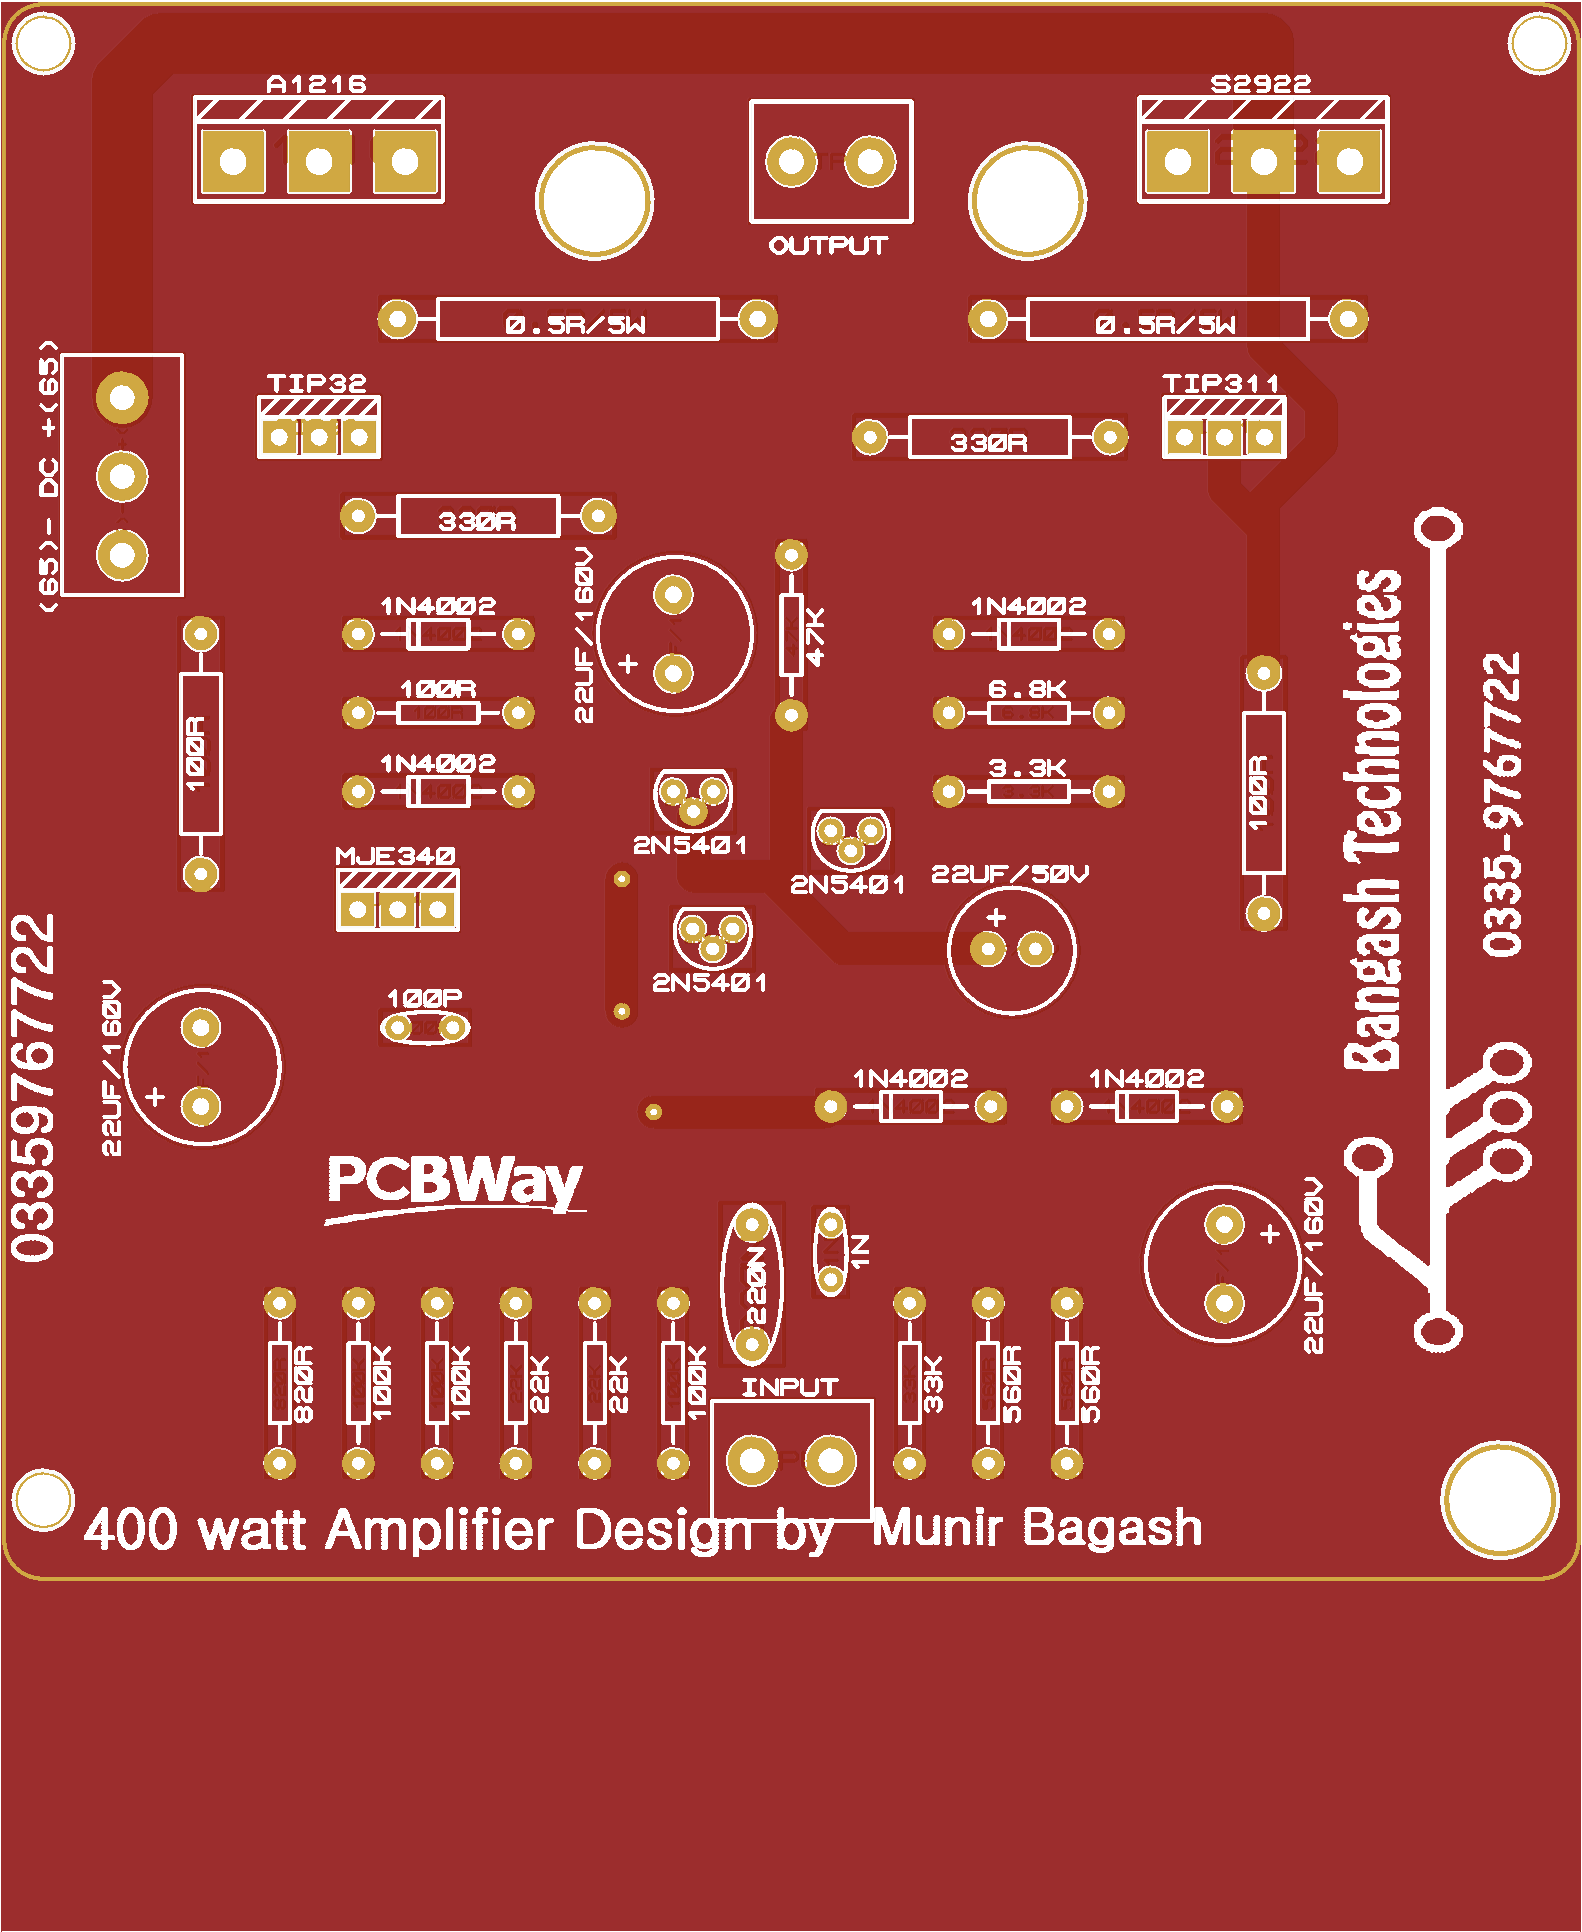 Tda7294 stereo new 200 watt amplifier - Share Project - PCBWay